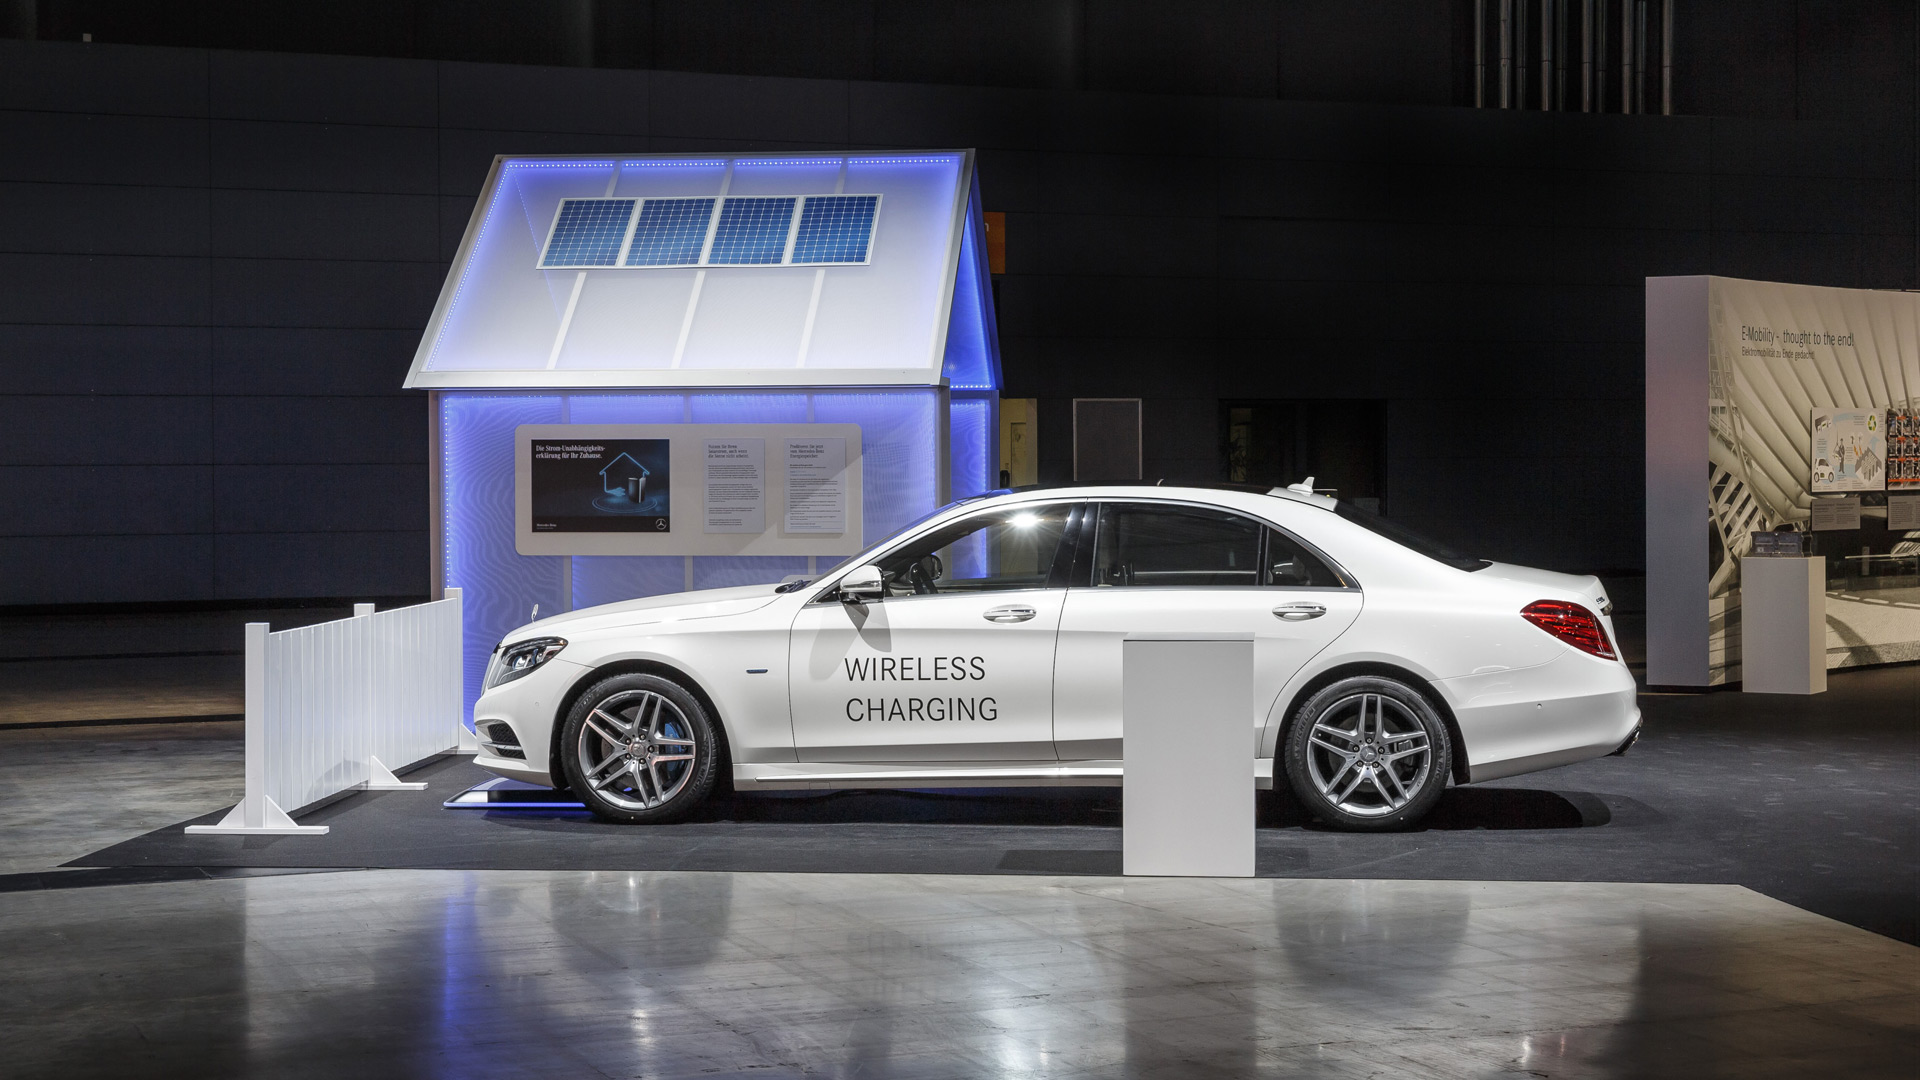 Mercedes confirms wireless charging for S550e plug-in hybrid